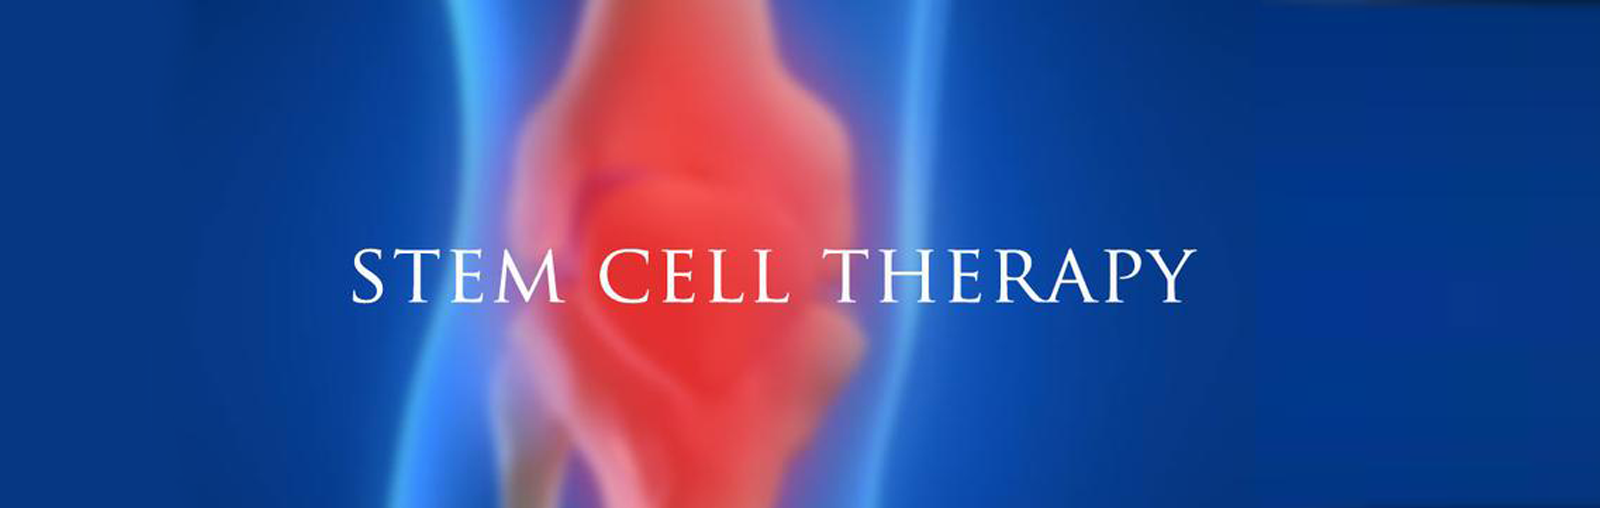 Stem-cells-therapy